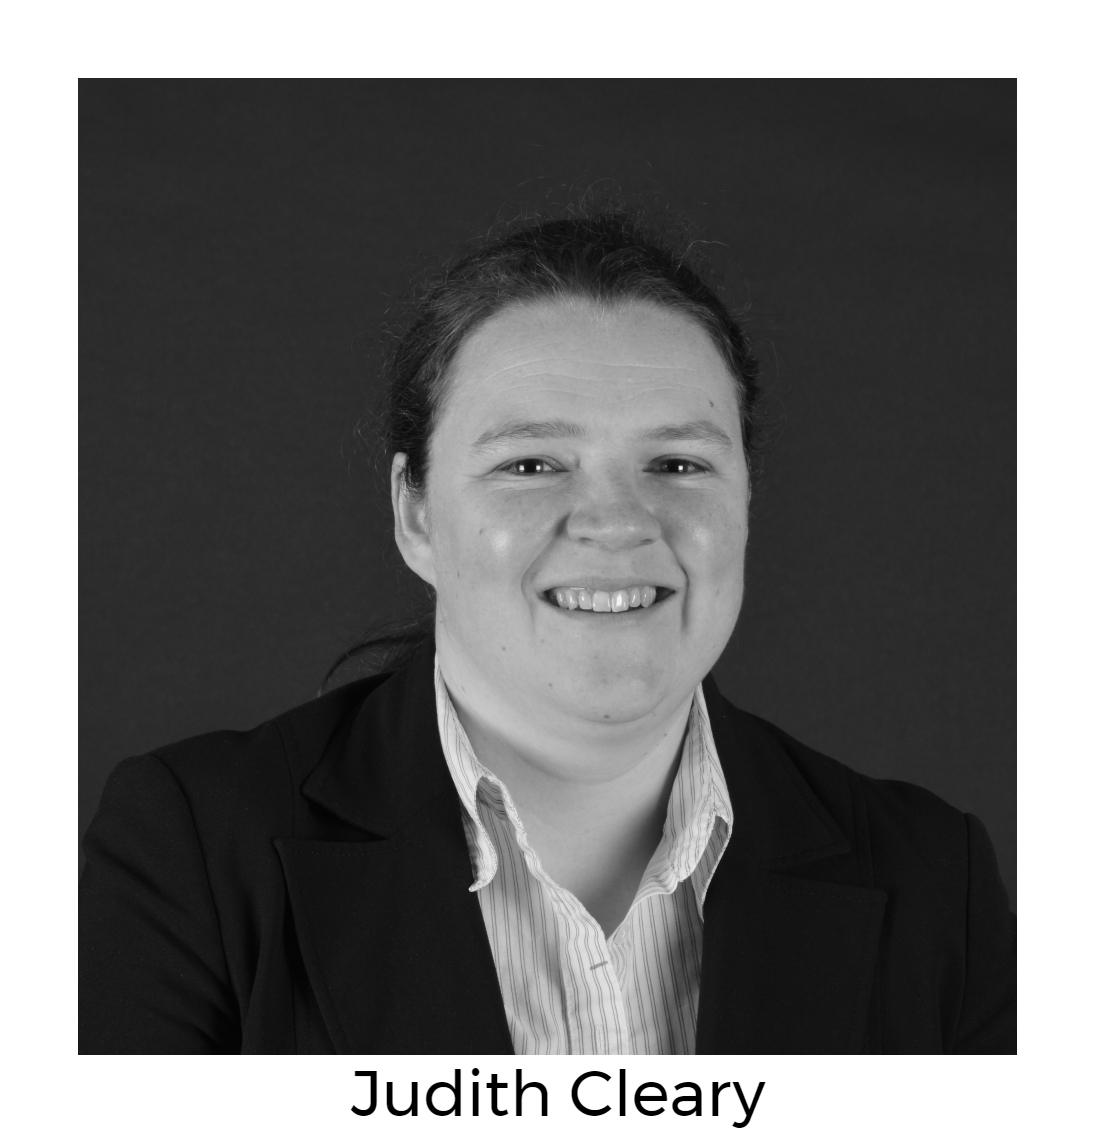 Judith Cleary